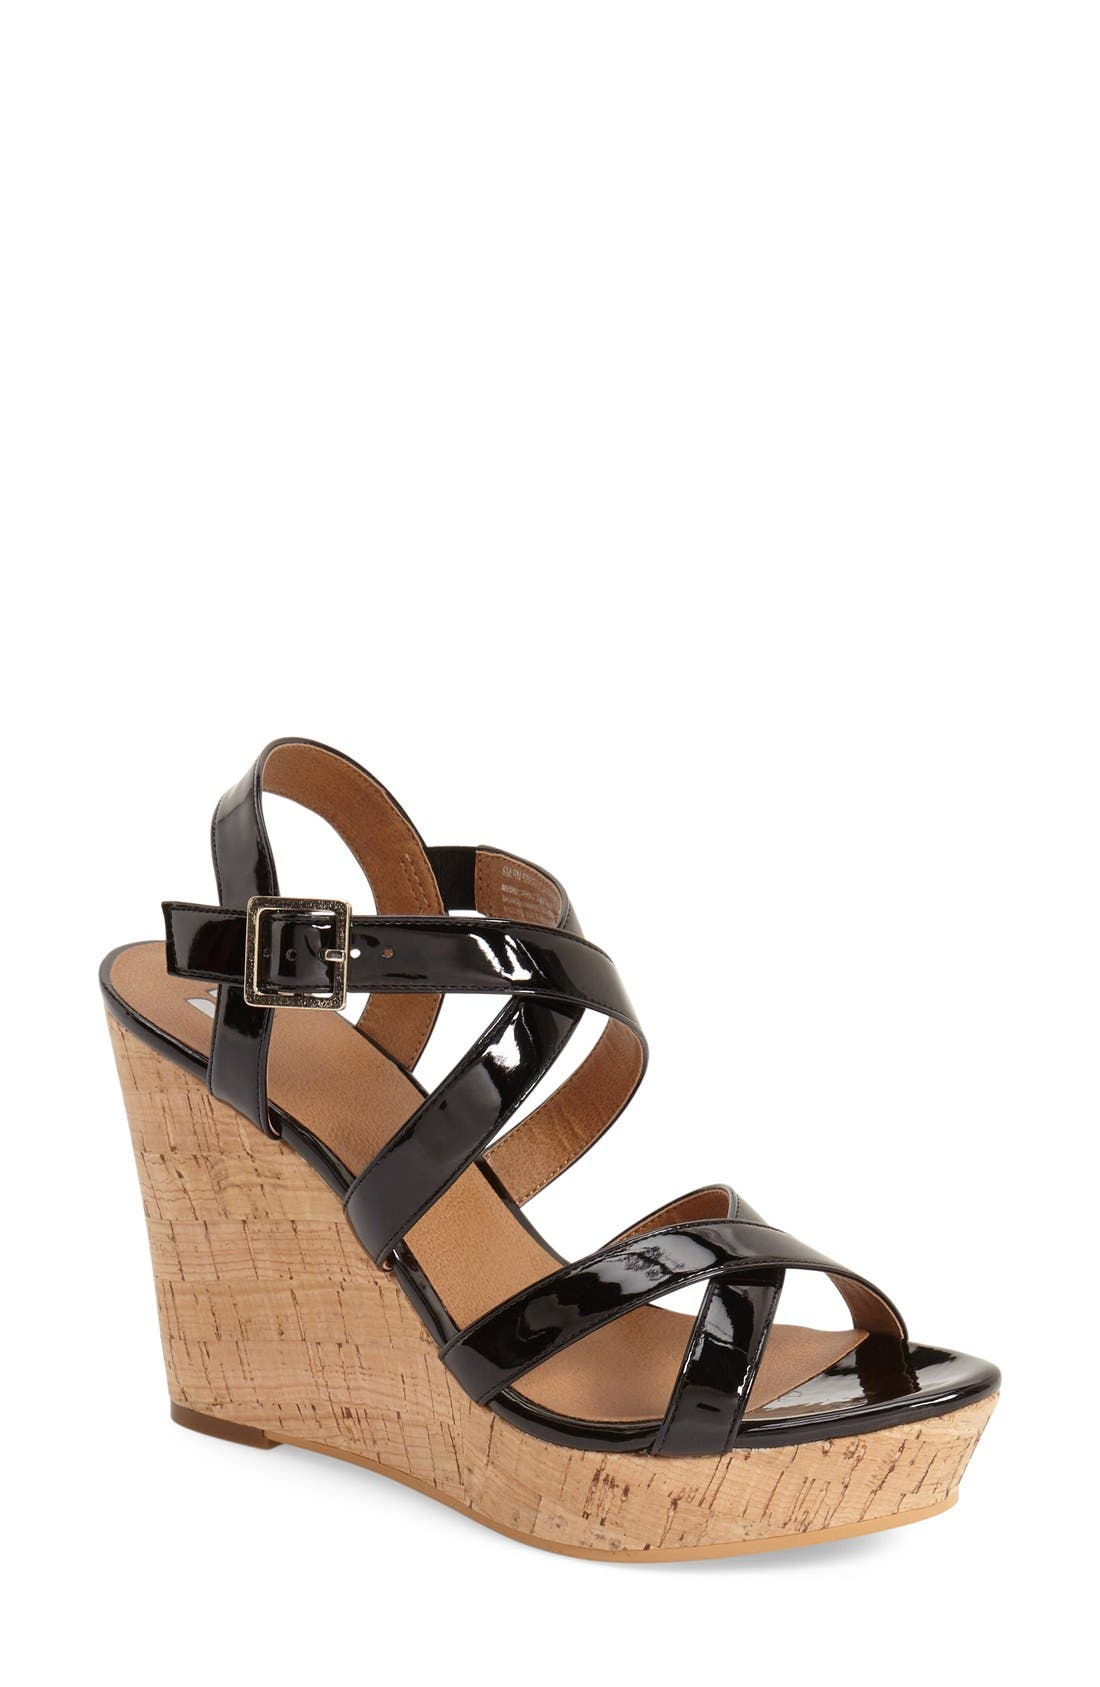 'Summers' Wedge Sandal,                         Main,                         color, 003